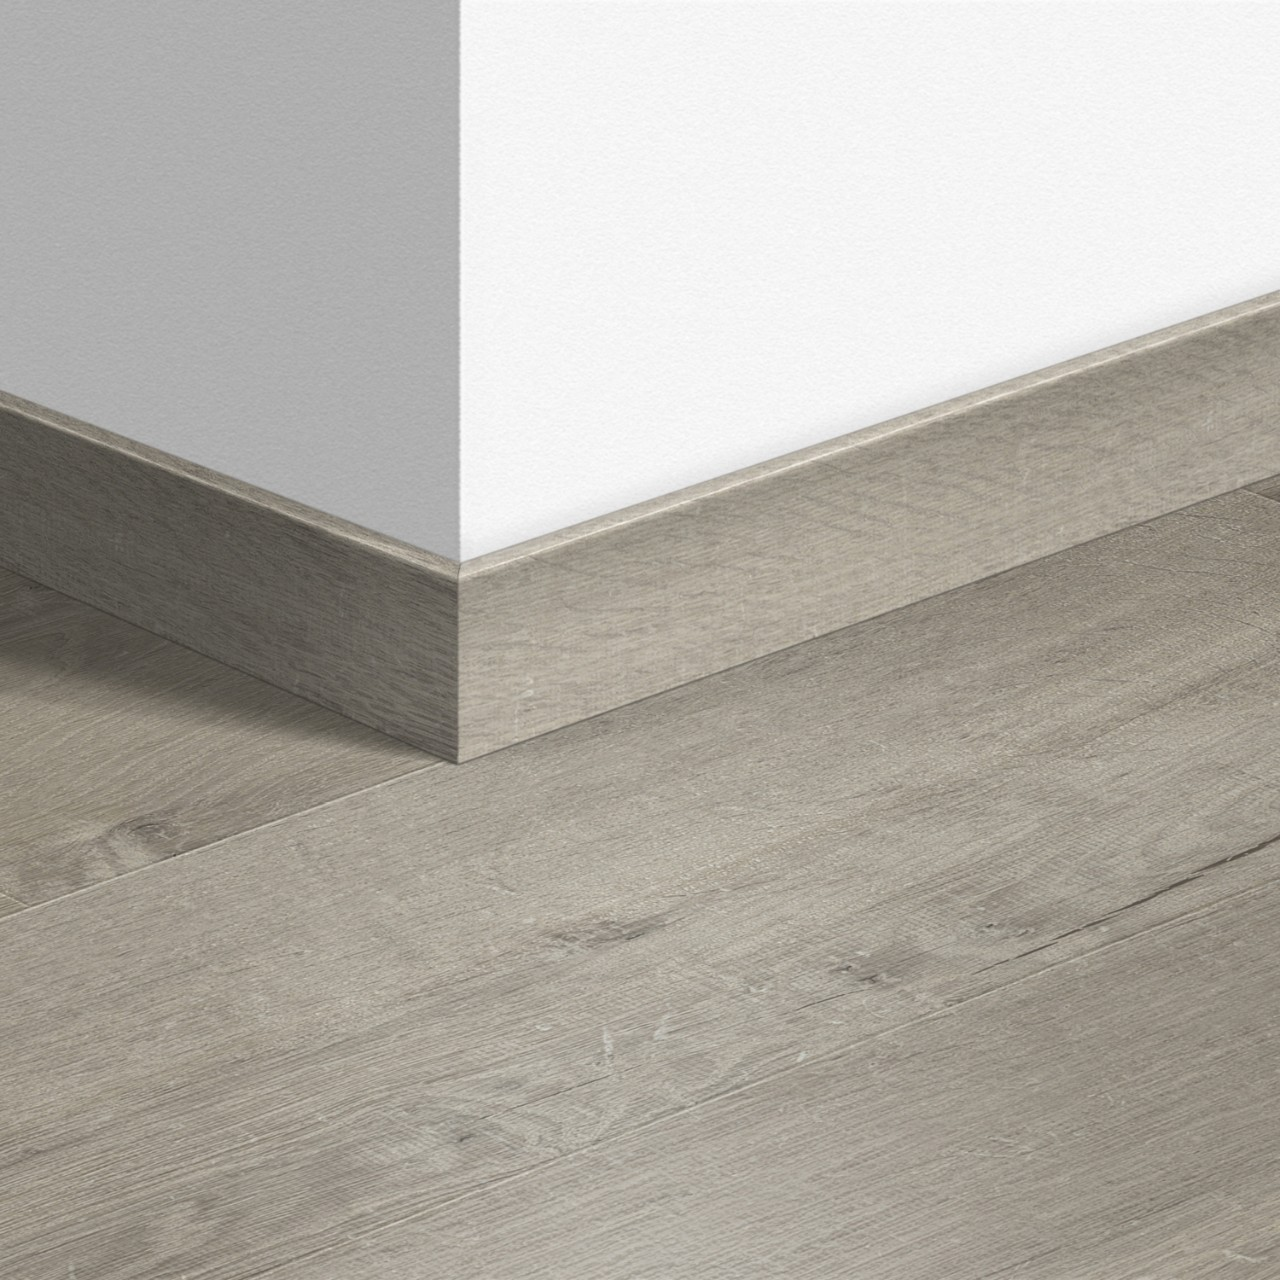 QSSK Laminate Accessories Soft oak grey QSSK03558